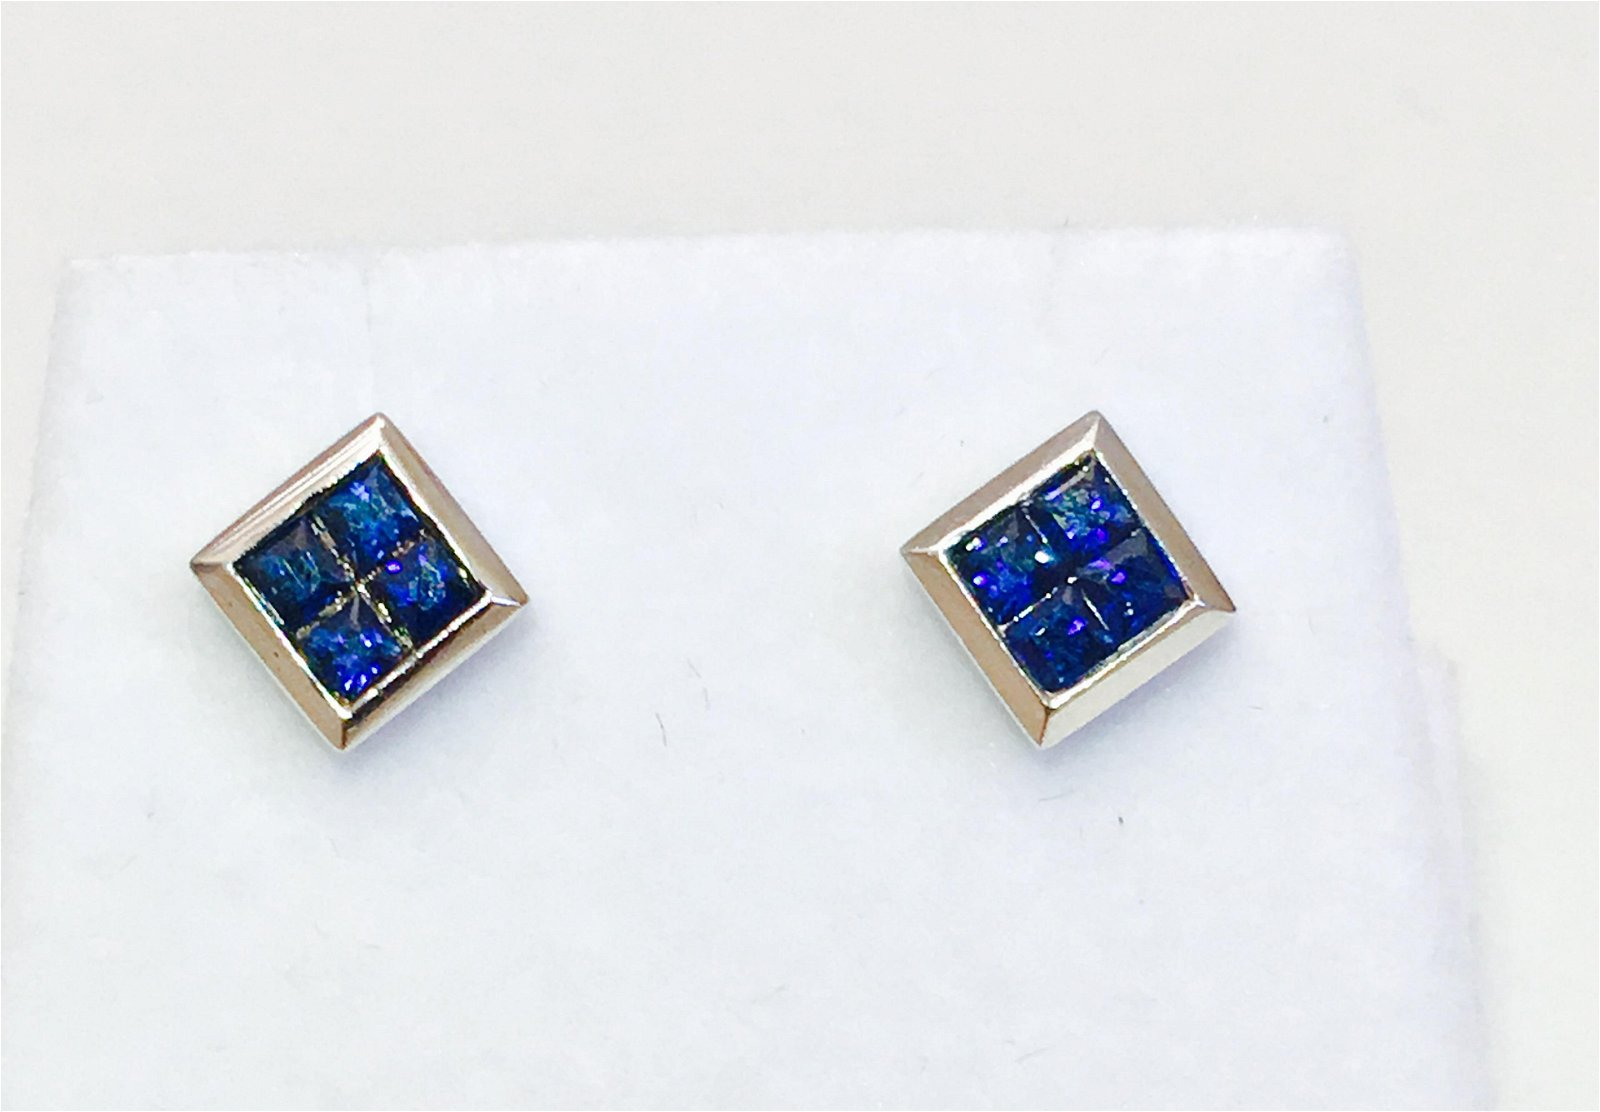 14K gold. 0.80 CT Blue Sapphire Studs Earrings